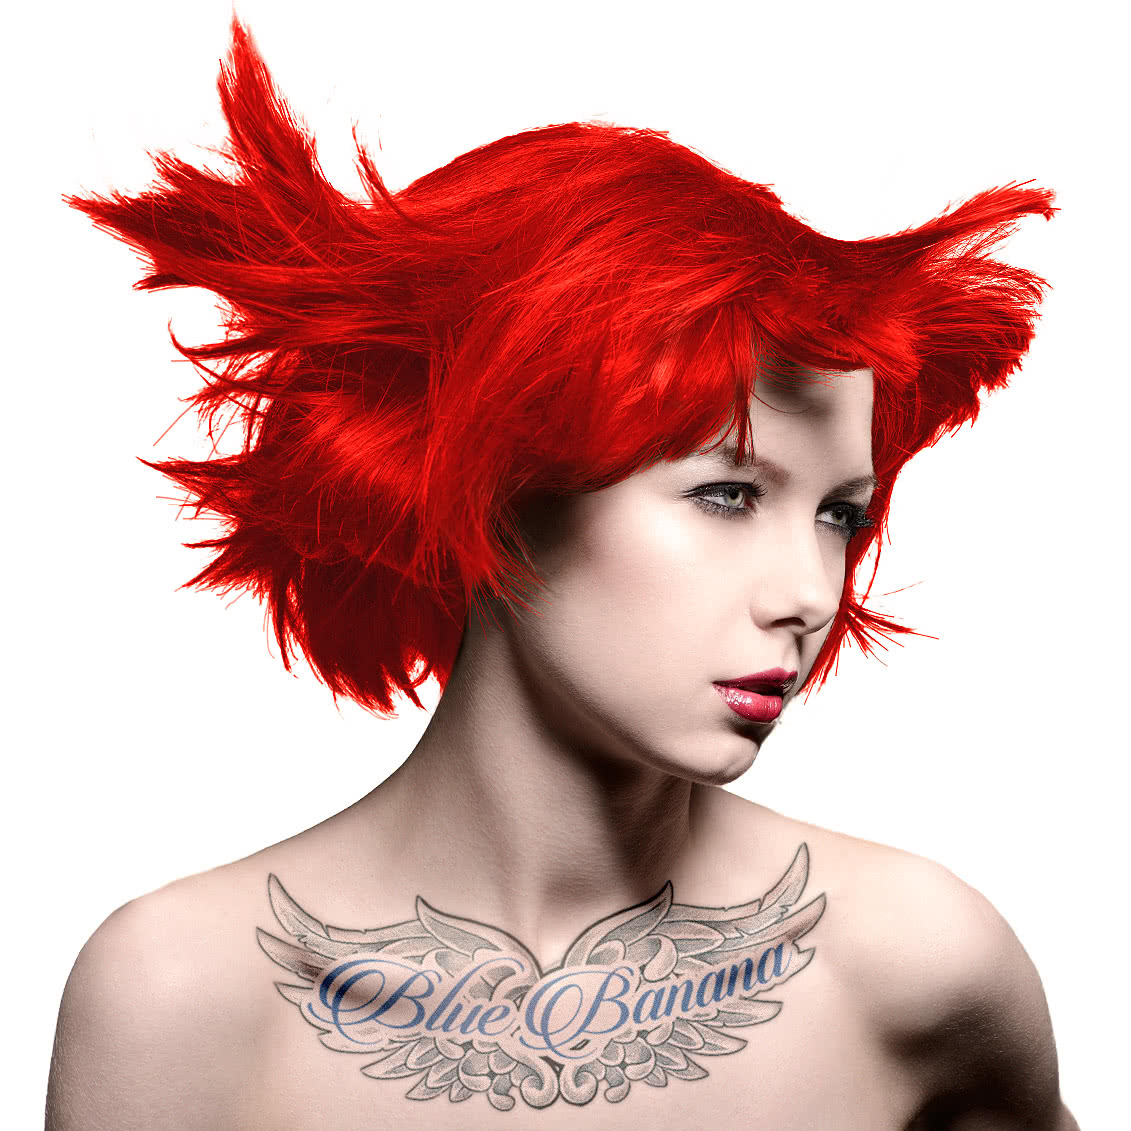 Manic Panic Amplified Semi-Permanent Hair Dye 118ml (Pillarbox Red)